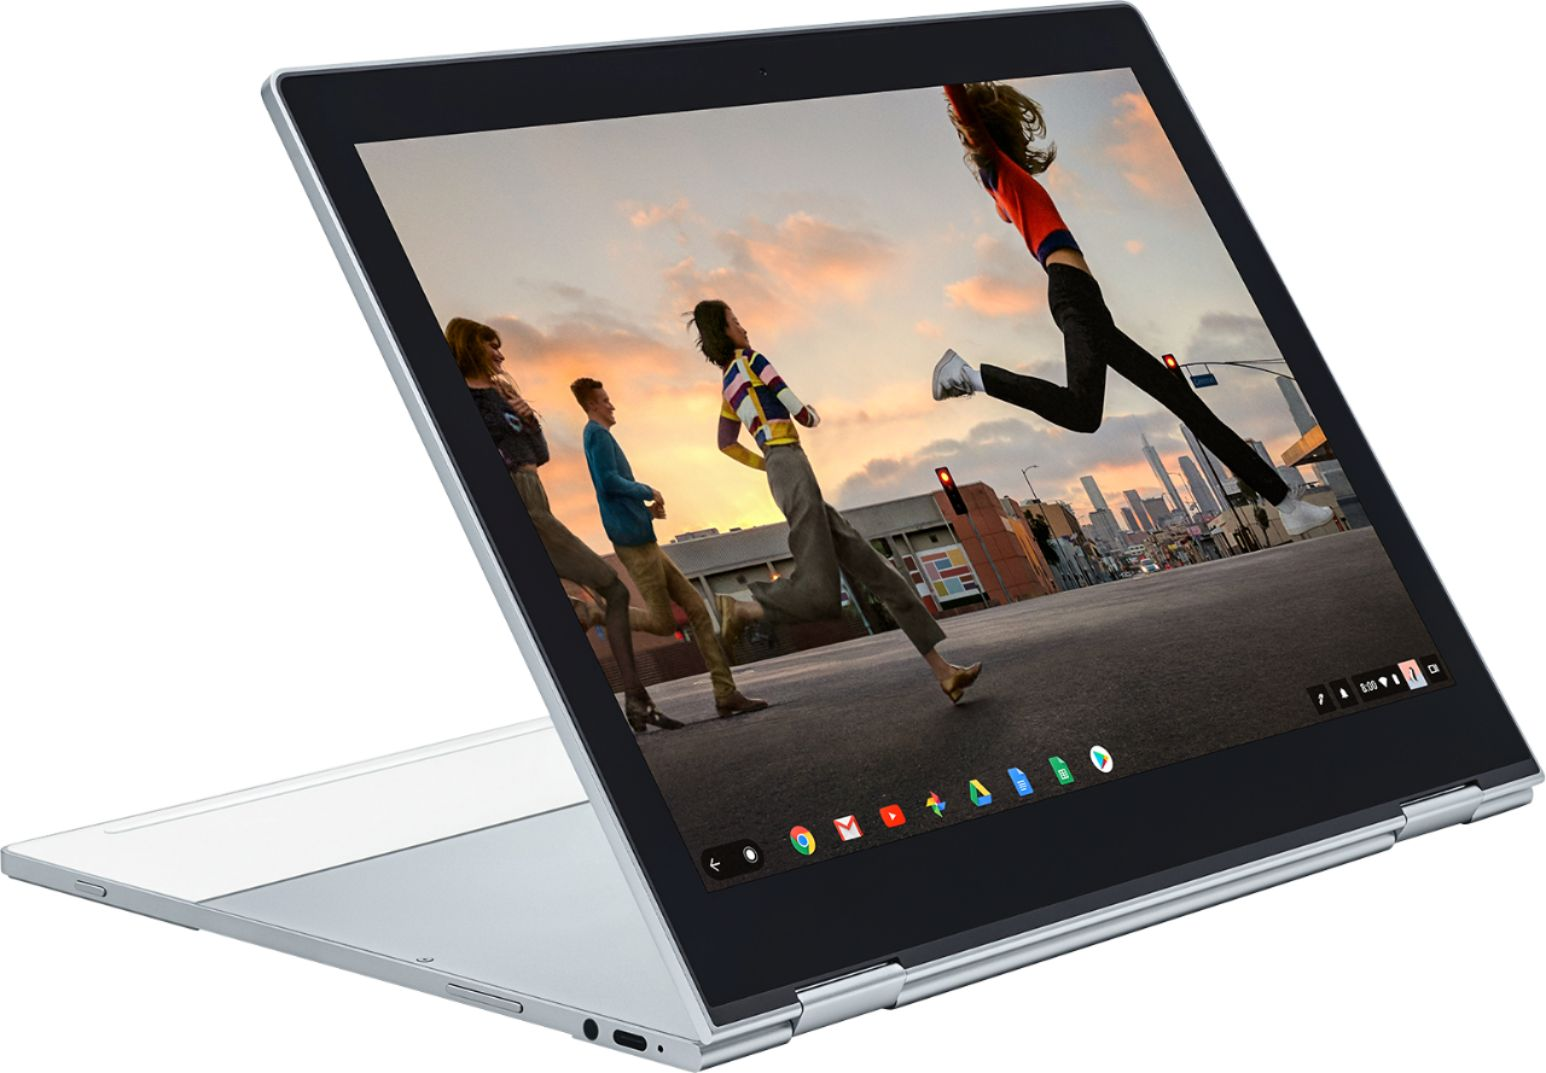 Google Pixelbook #Pixelbook #BestBuy #technology #shopping #ad